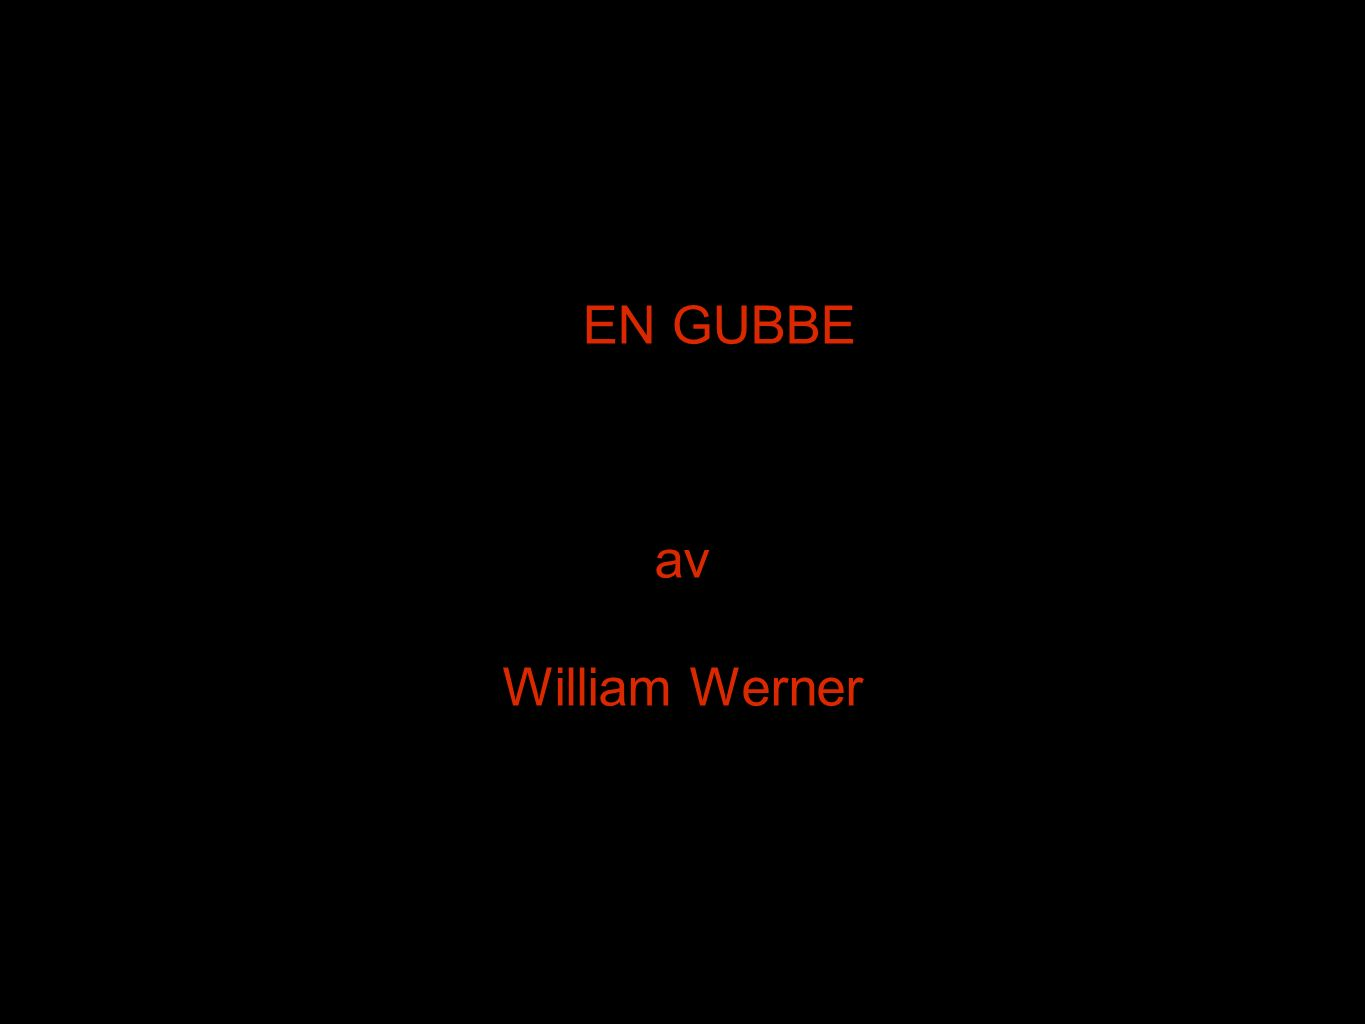 EN GUBBE av William Werner